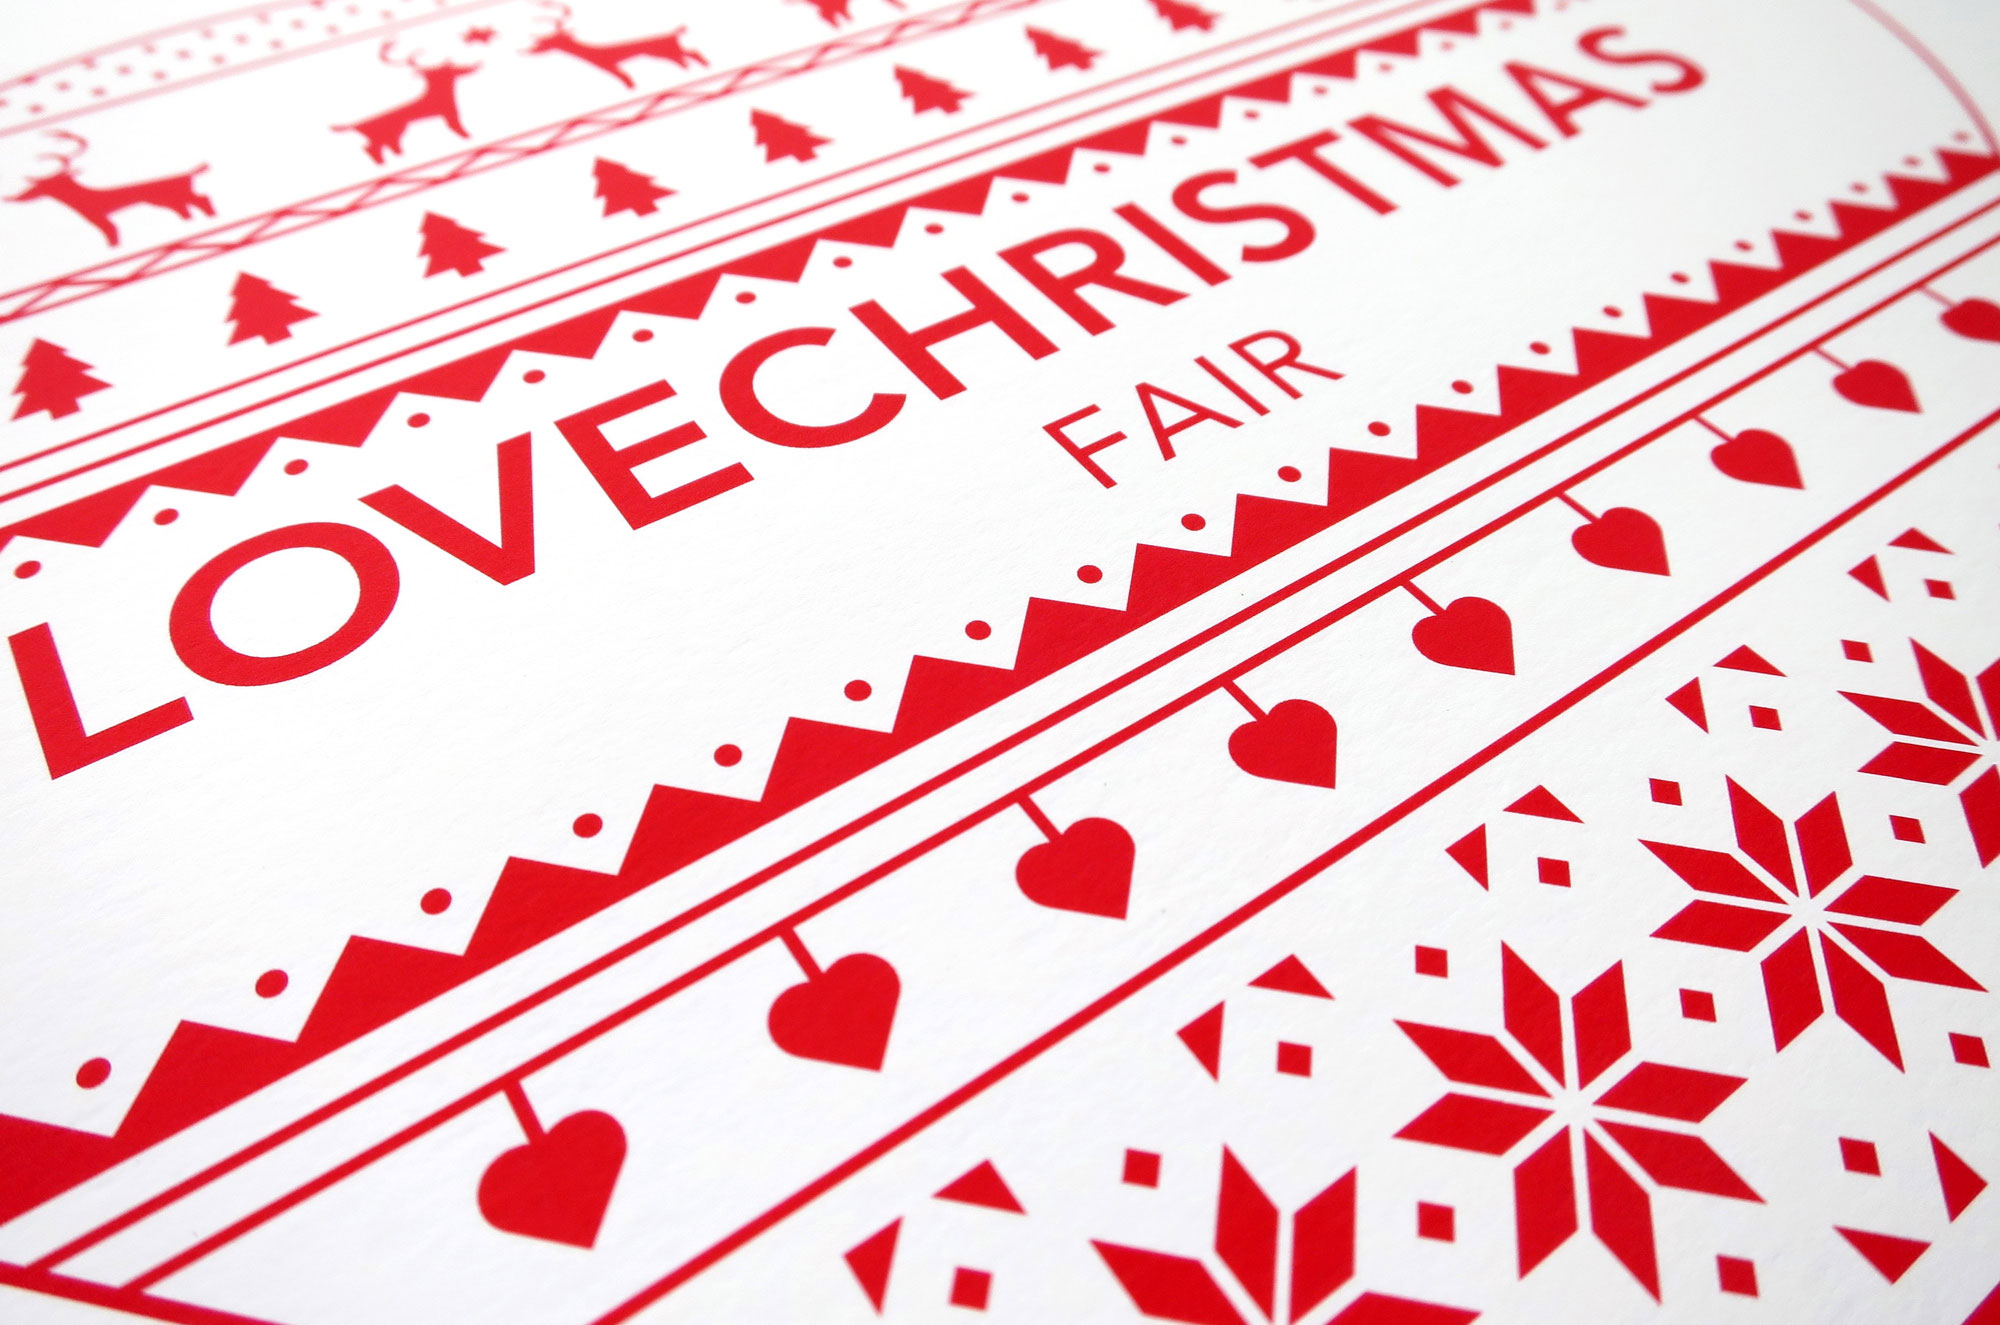 LoveChristmas Cover Image